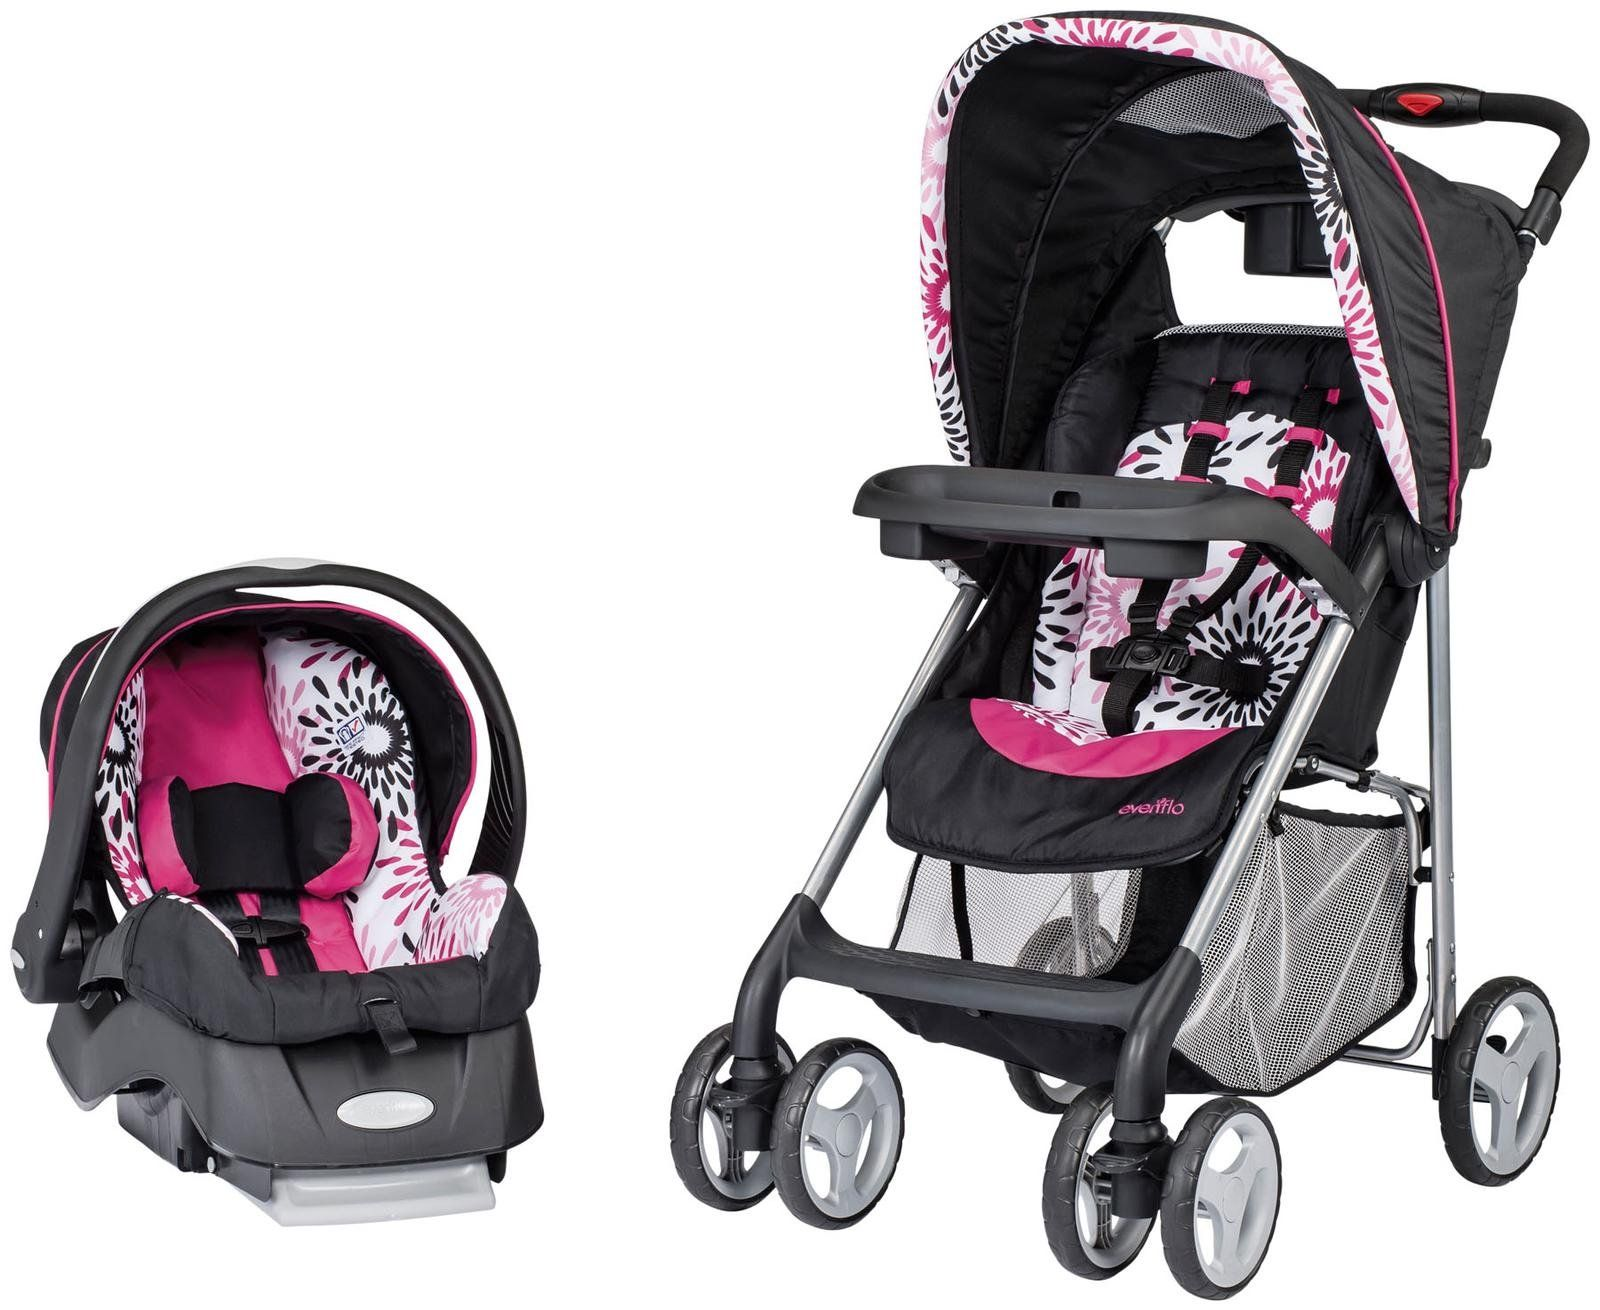 Best Car Seat and Stroller Combo Car Seat Facts Car Seat